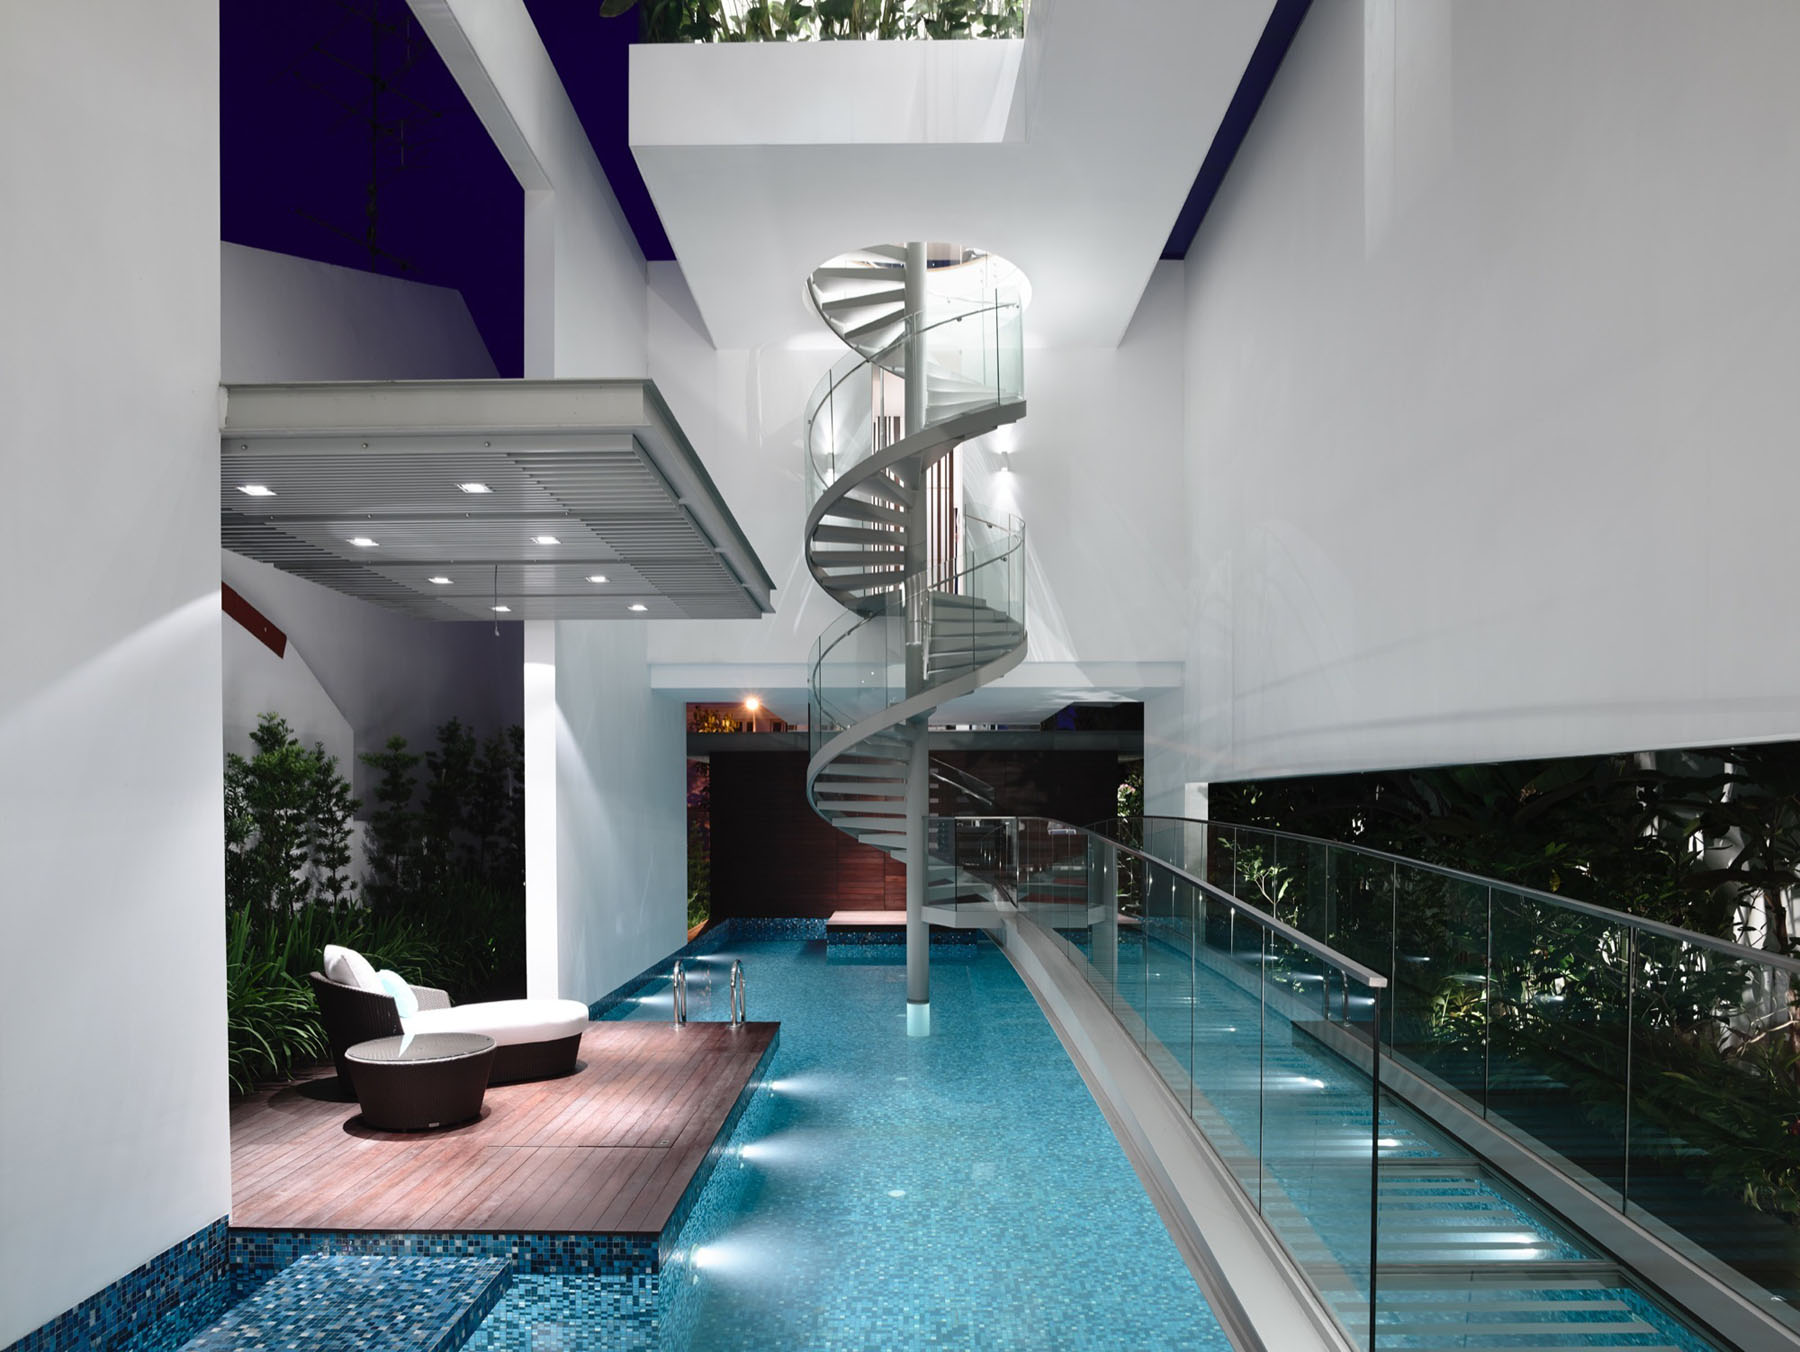 Stylish Modern Home with Interior Swimming Pool and Glass Spiral Staircase